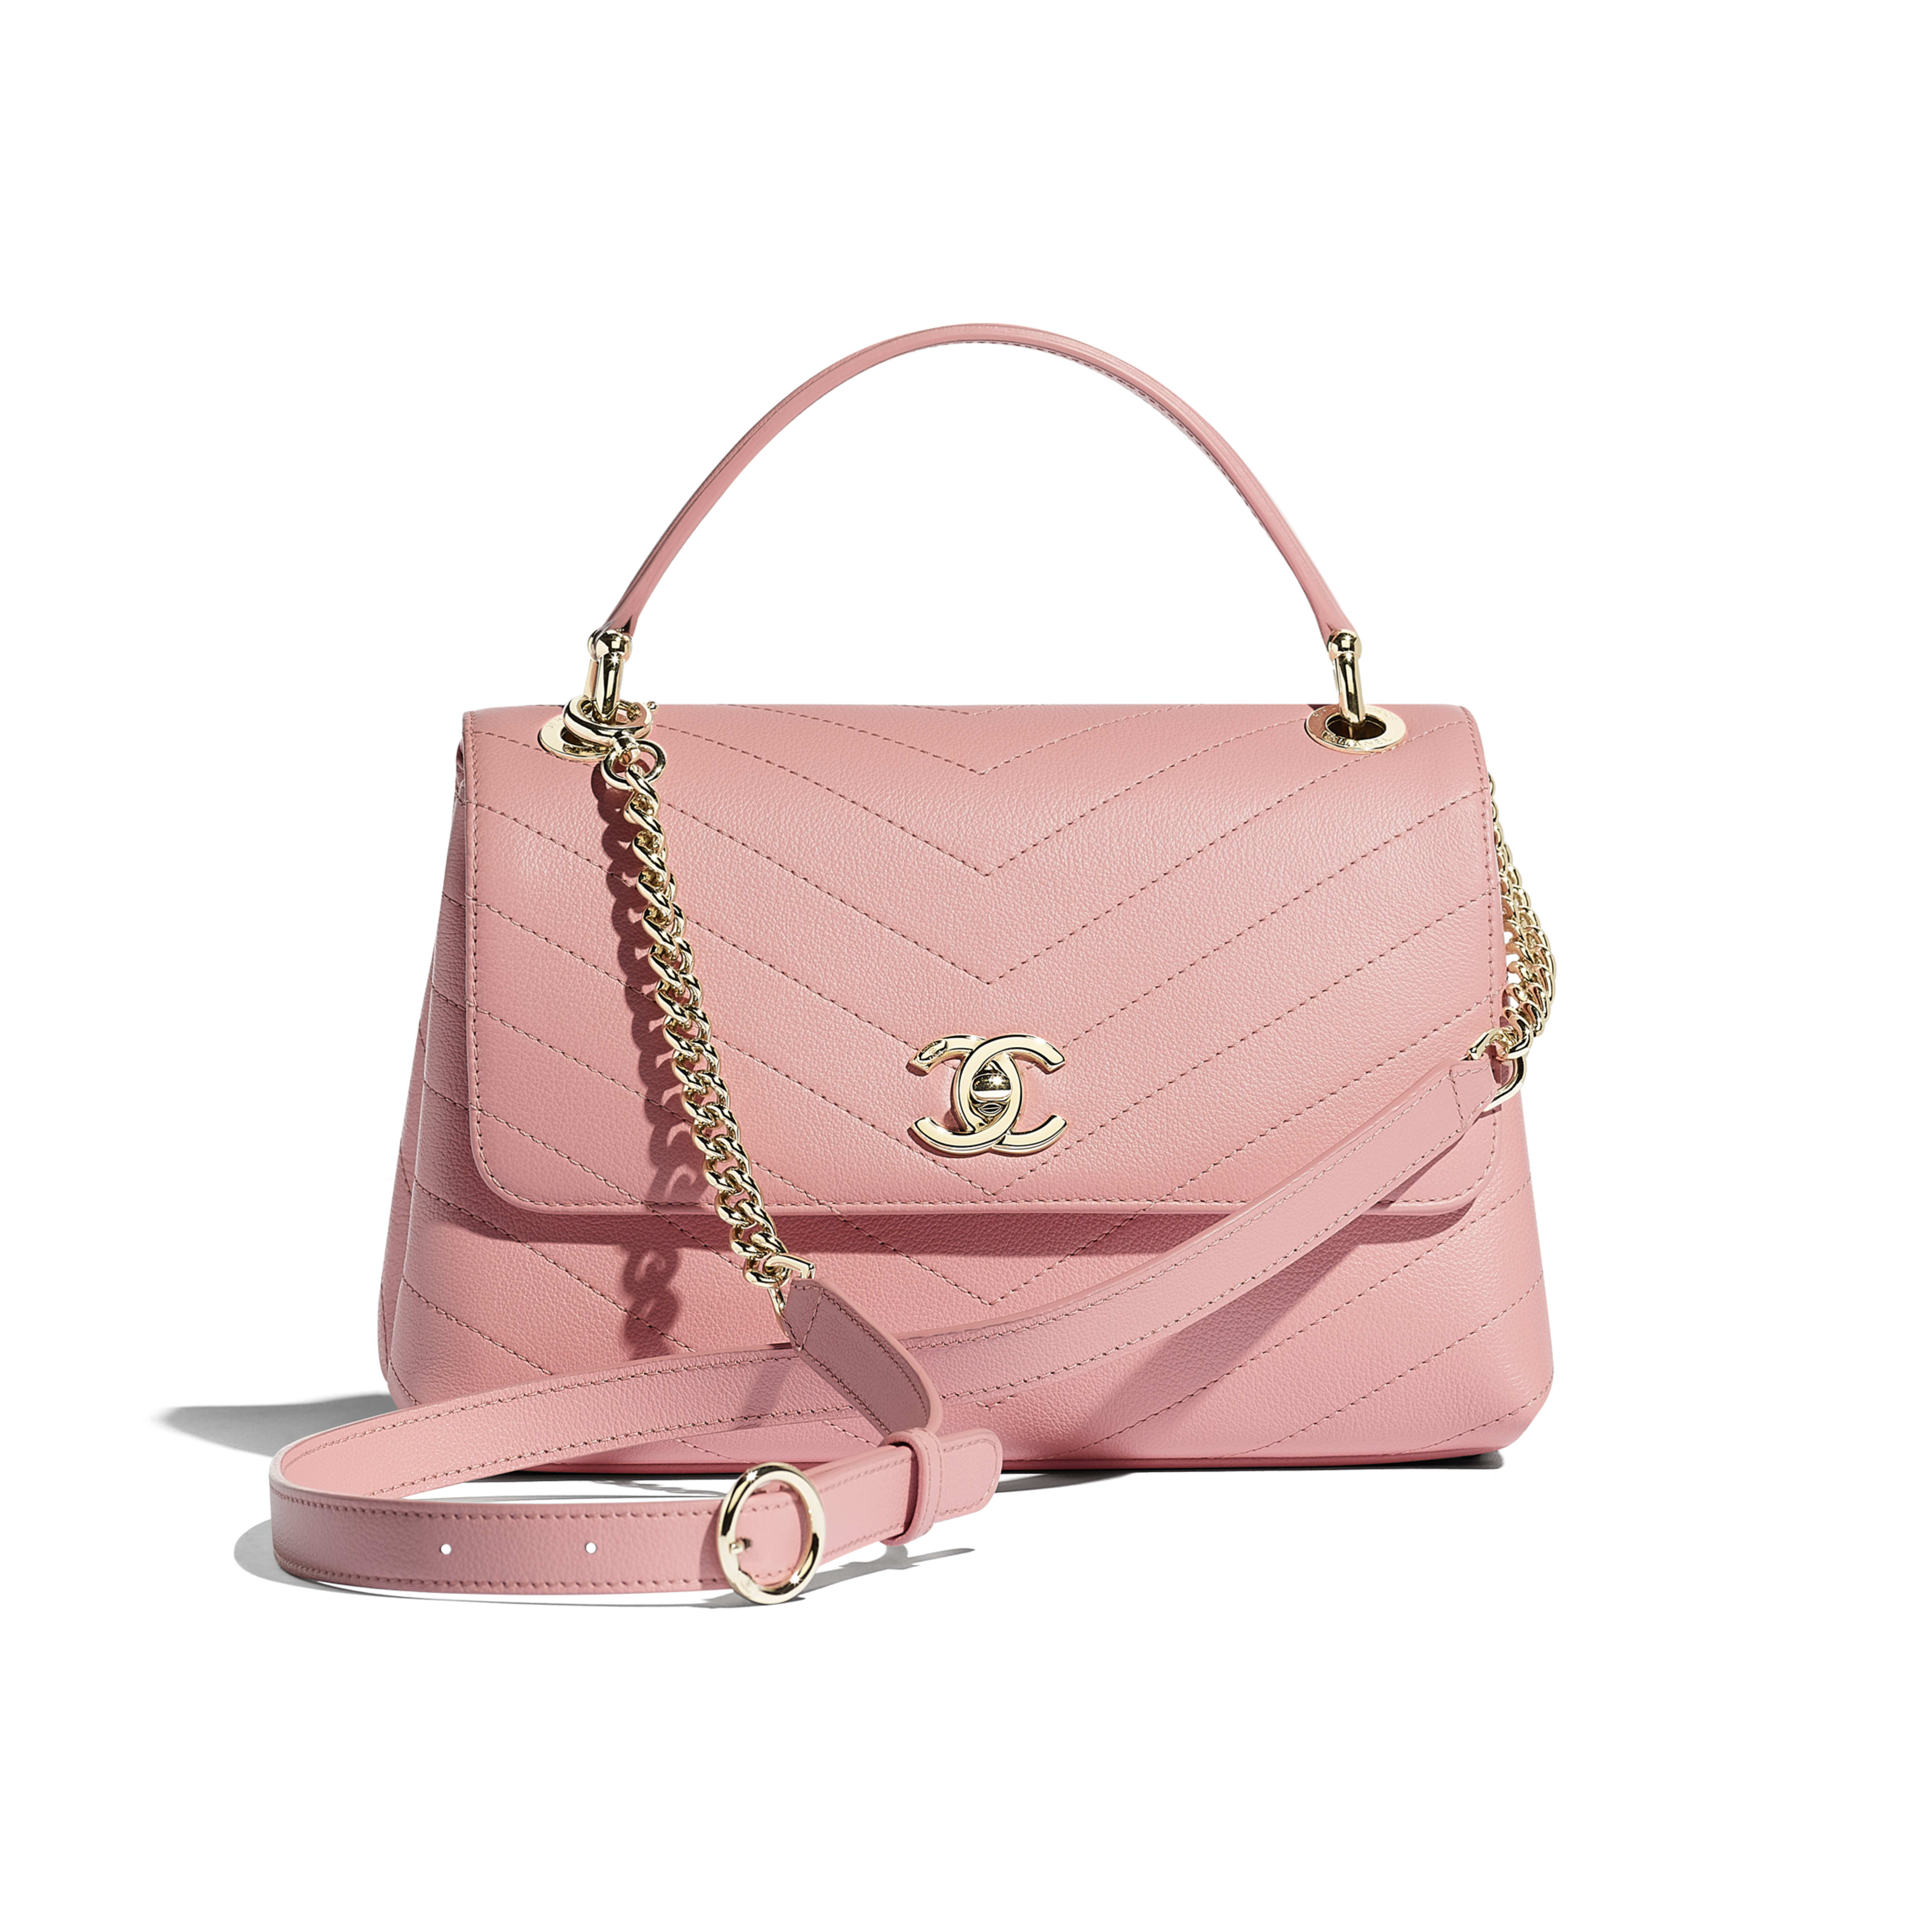 Small Flap Bag with Top Handle - Pink - Grained Calfskin & Gold-Tone Metal - Default view - see full sized version